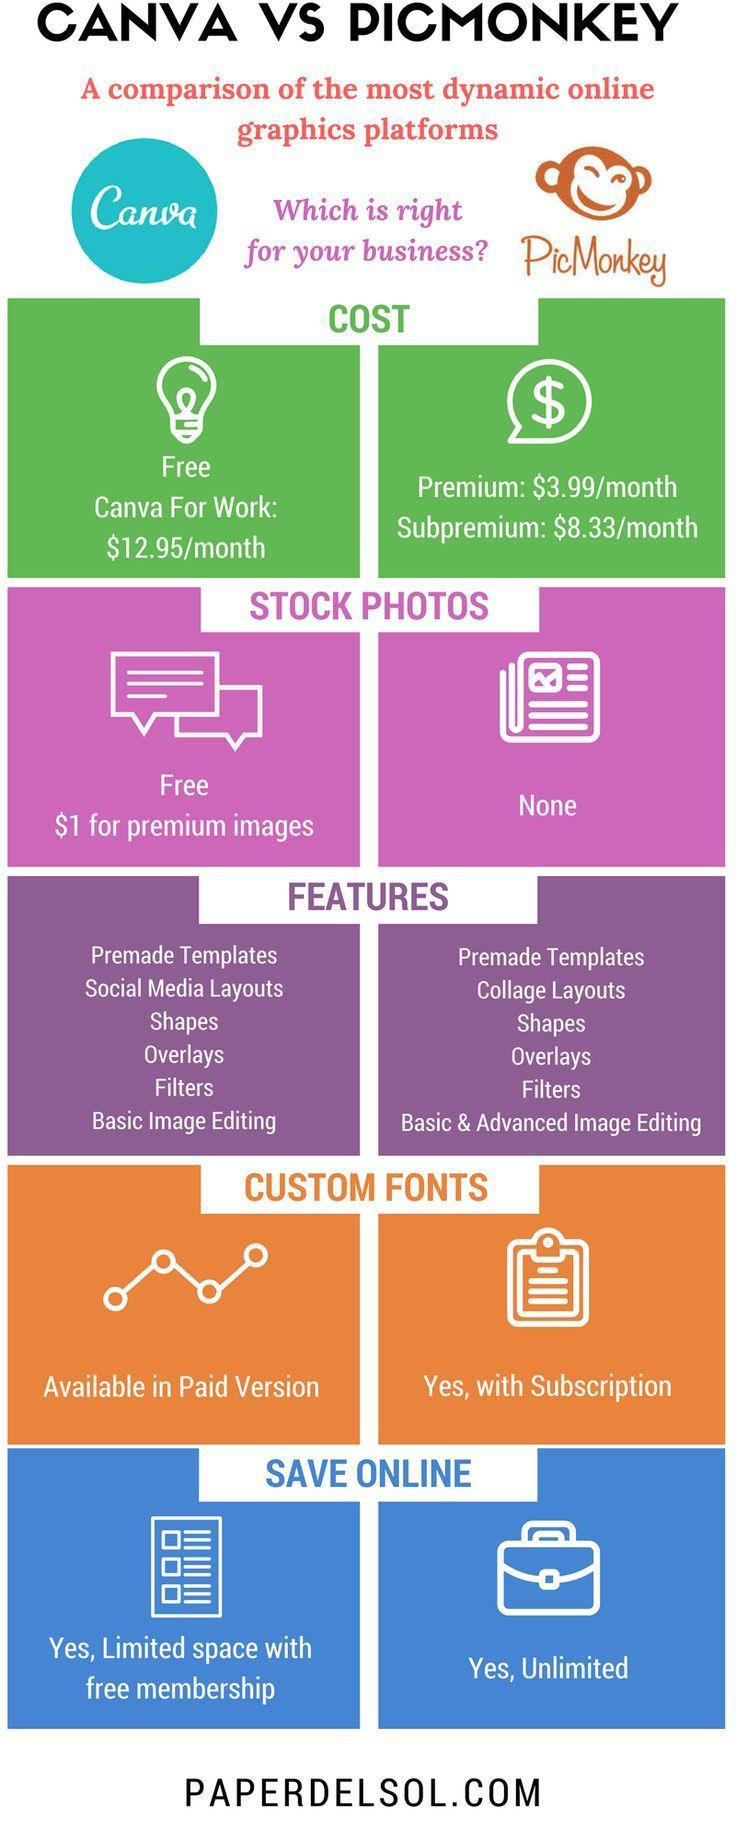 Canva or PicMonkey: Which is the right online graphic design ptform for your business?